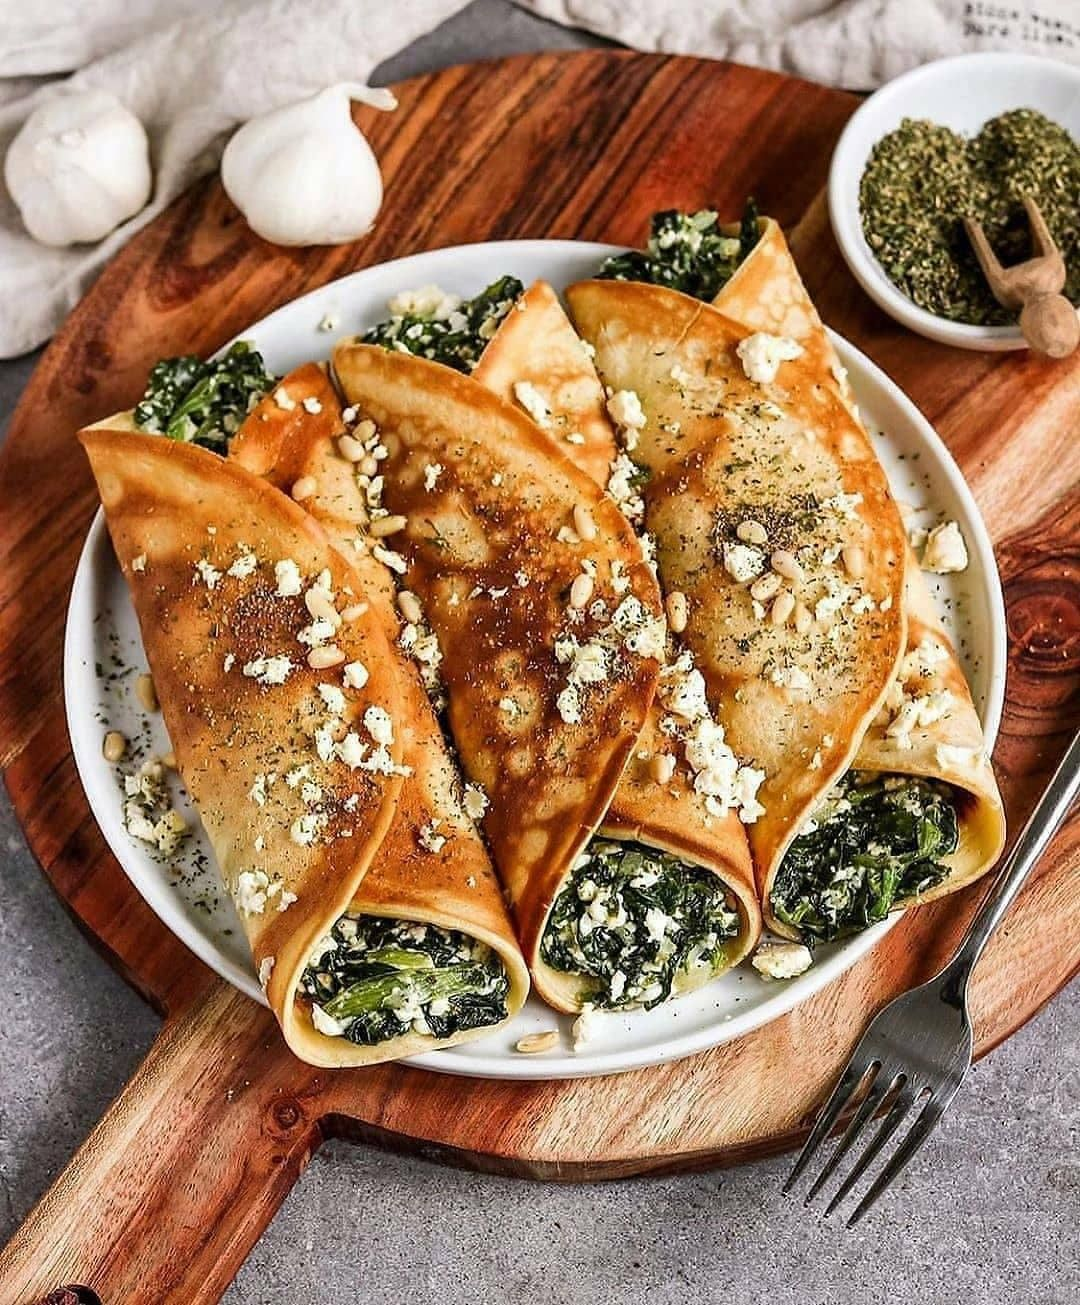 vegan oven baked filled crepes with spinach and feta by bya display image  e117110a